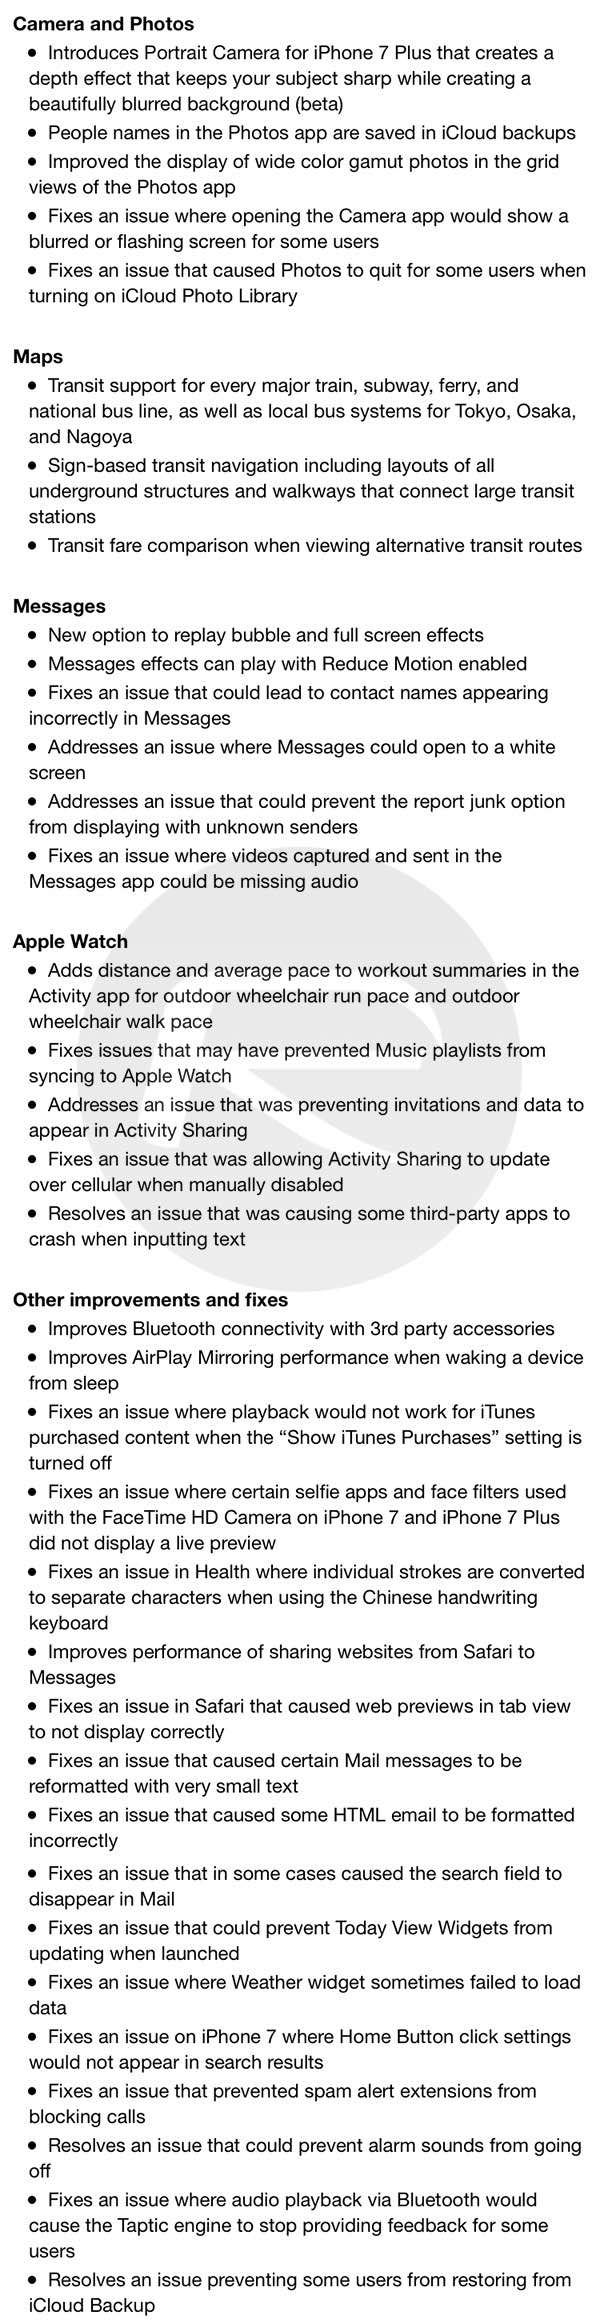 ios-10.1-changelog-final11